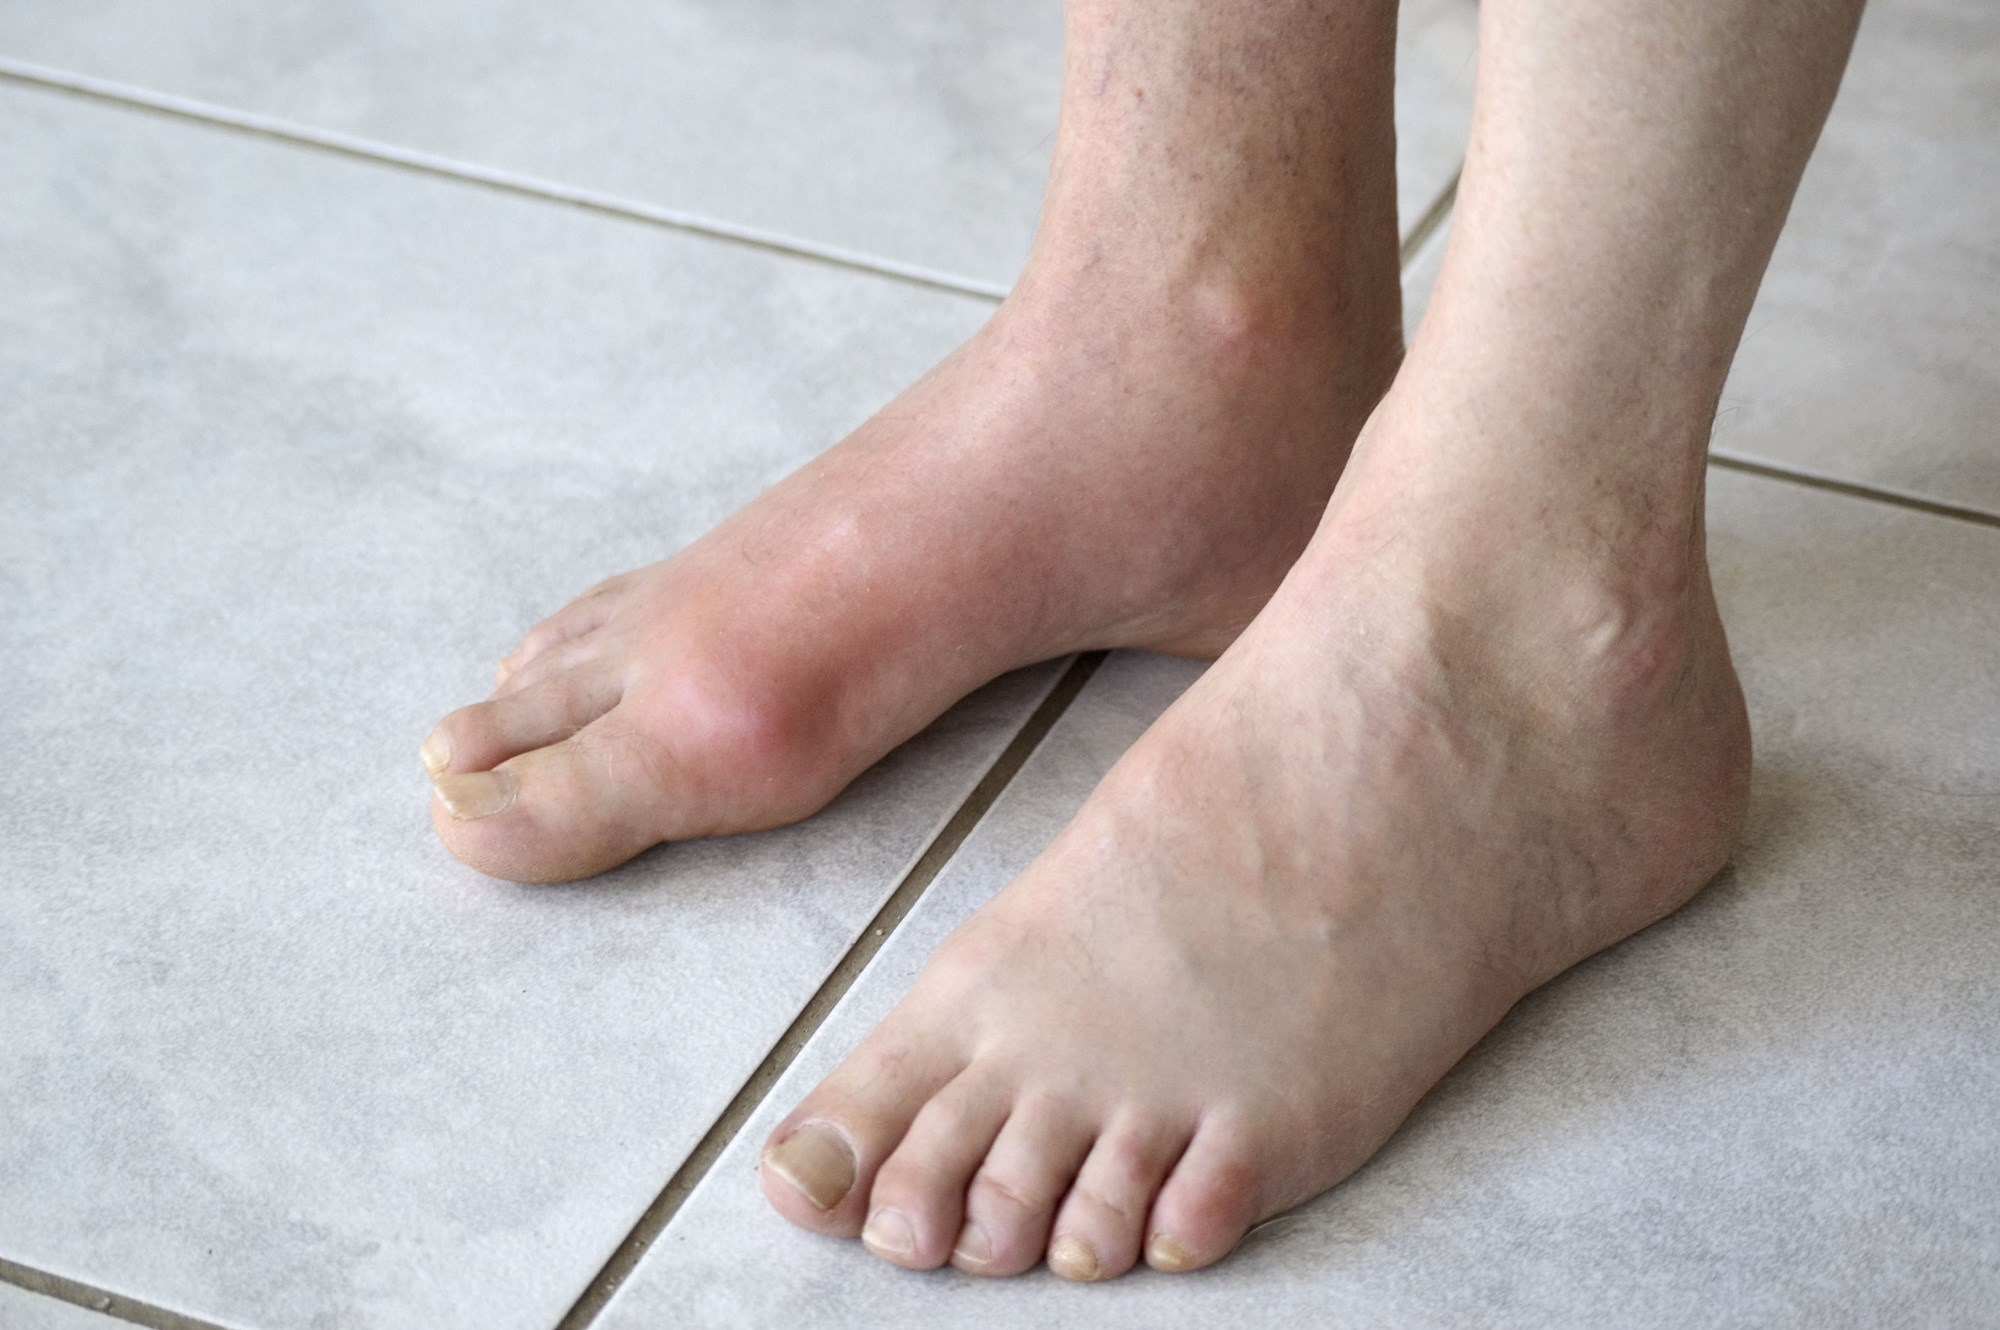 Factors Associated With Bone Erosion Identified in Gout